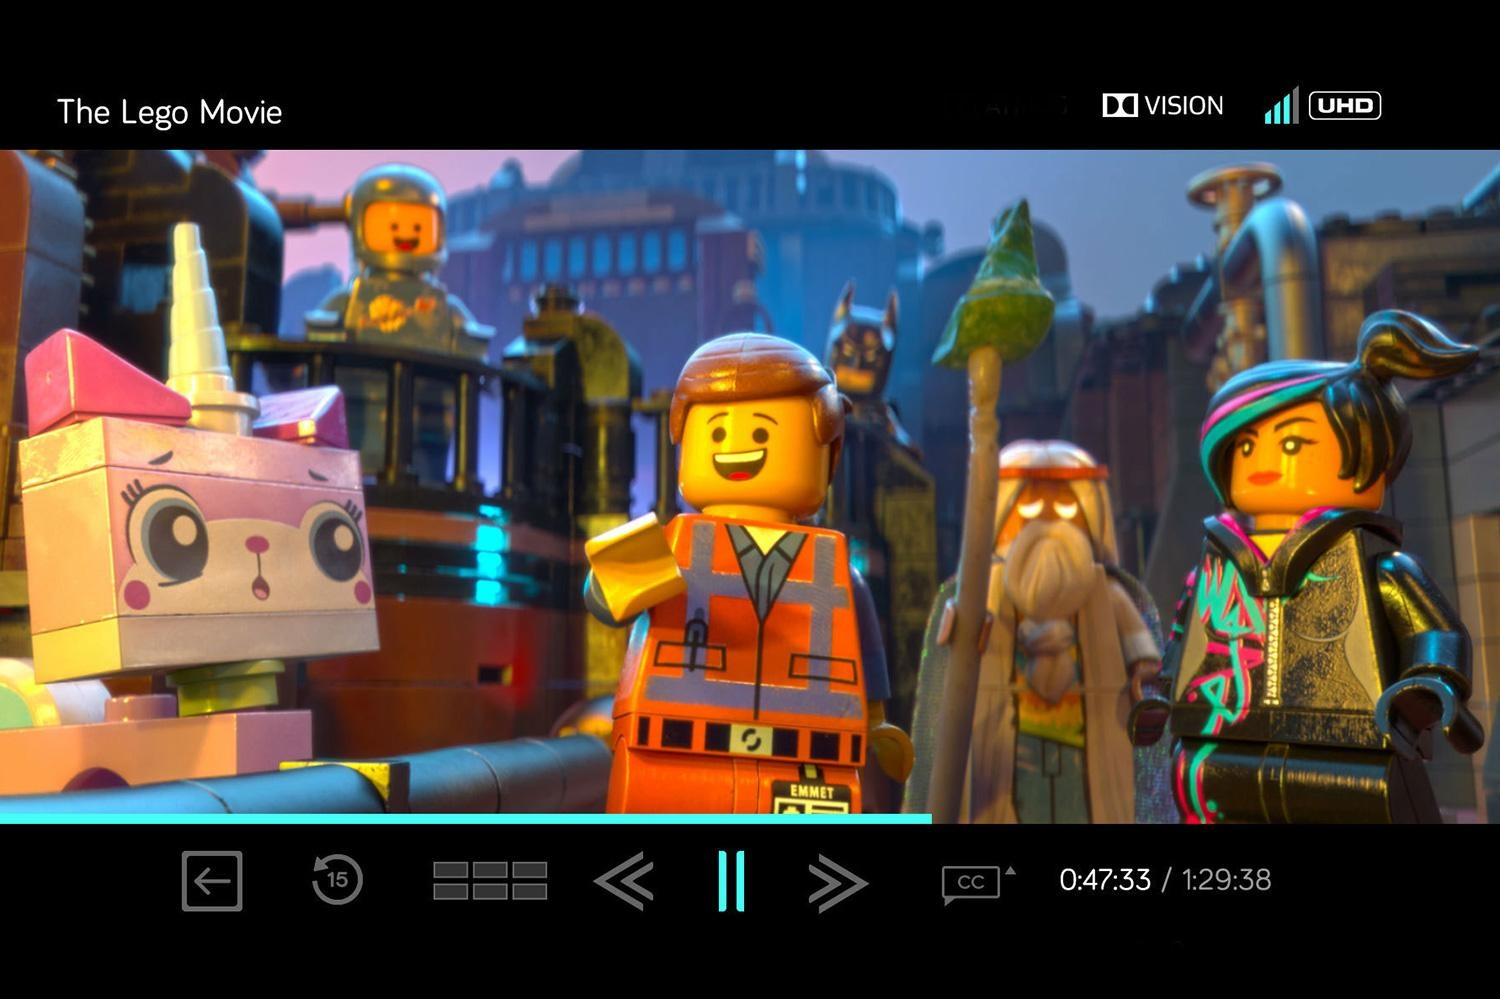 THE LEGO MOVIE (2014) IN ULTRA HD